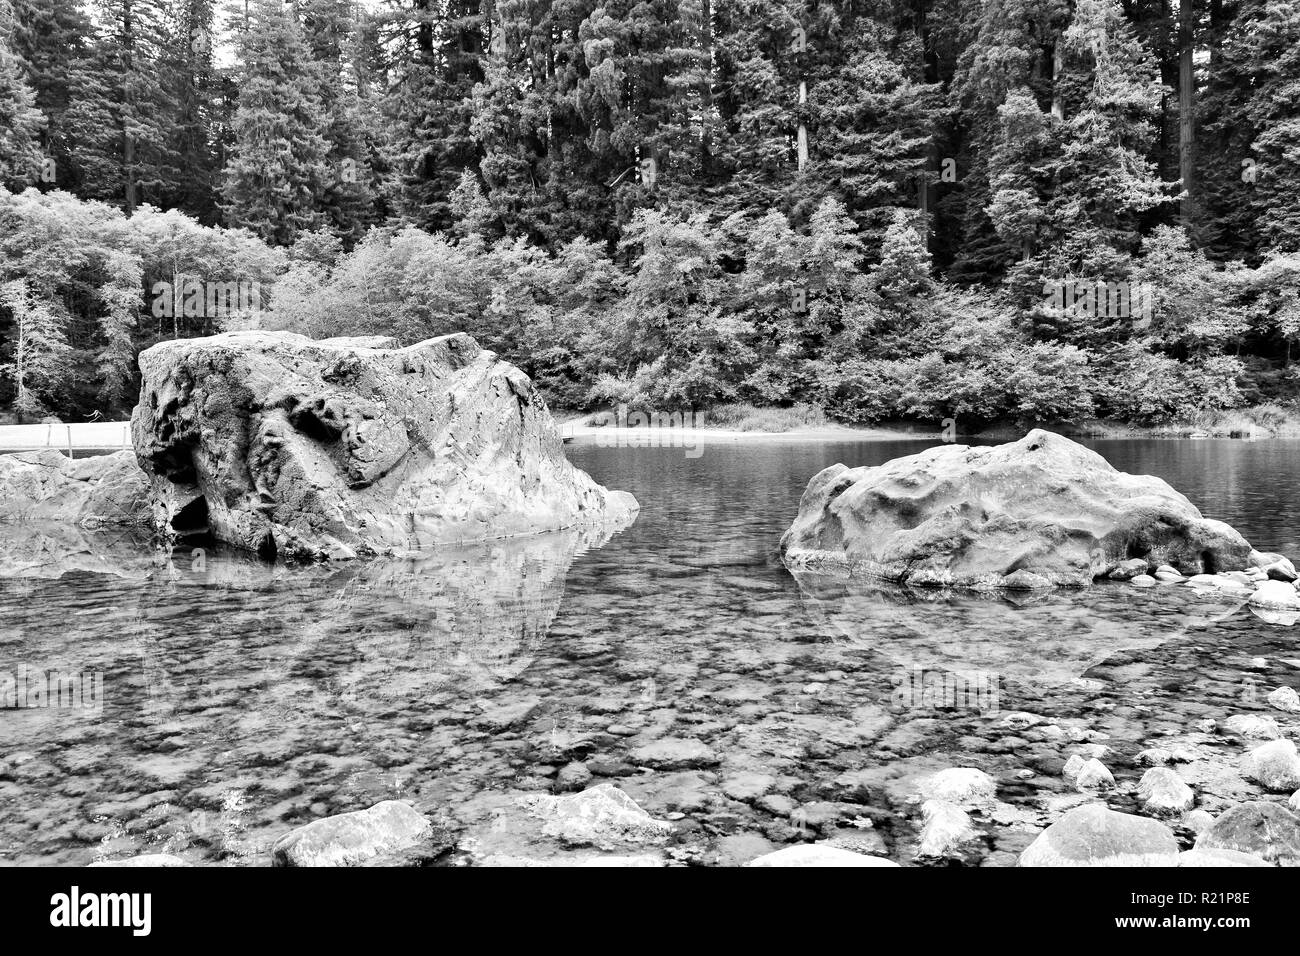 The Smith River at Jedediah Smith Redwoods State Park in black and white - Stock Image